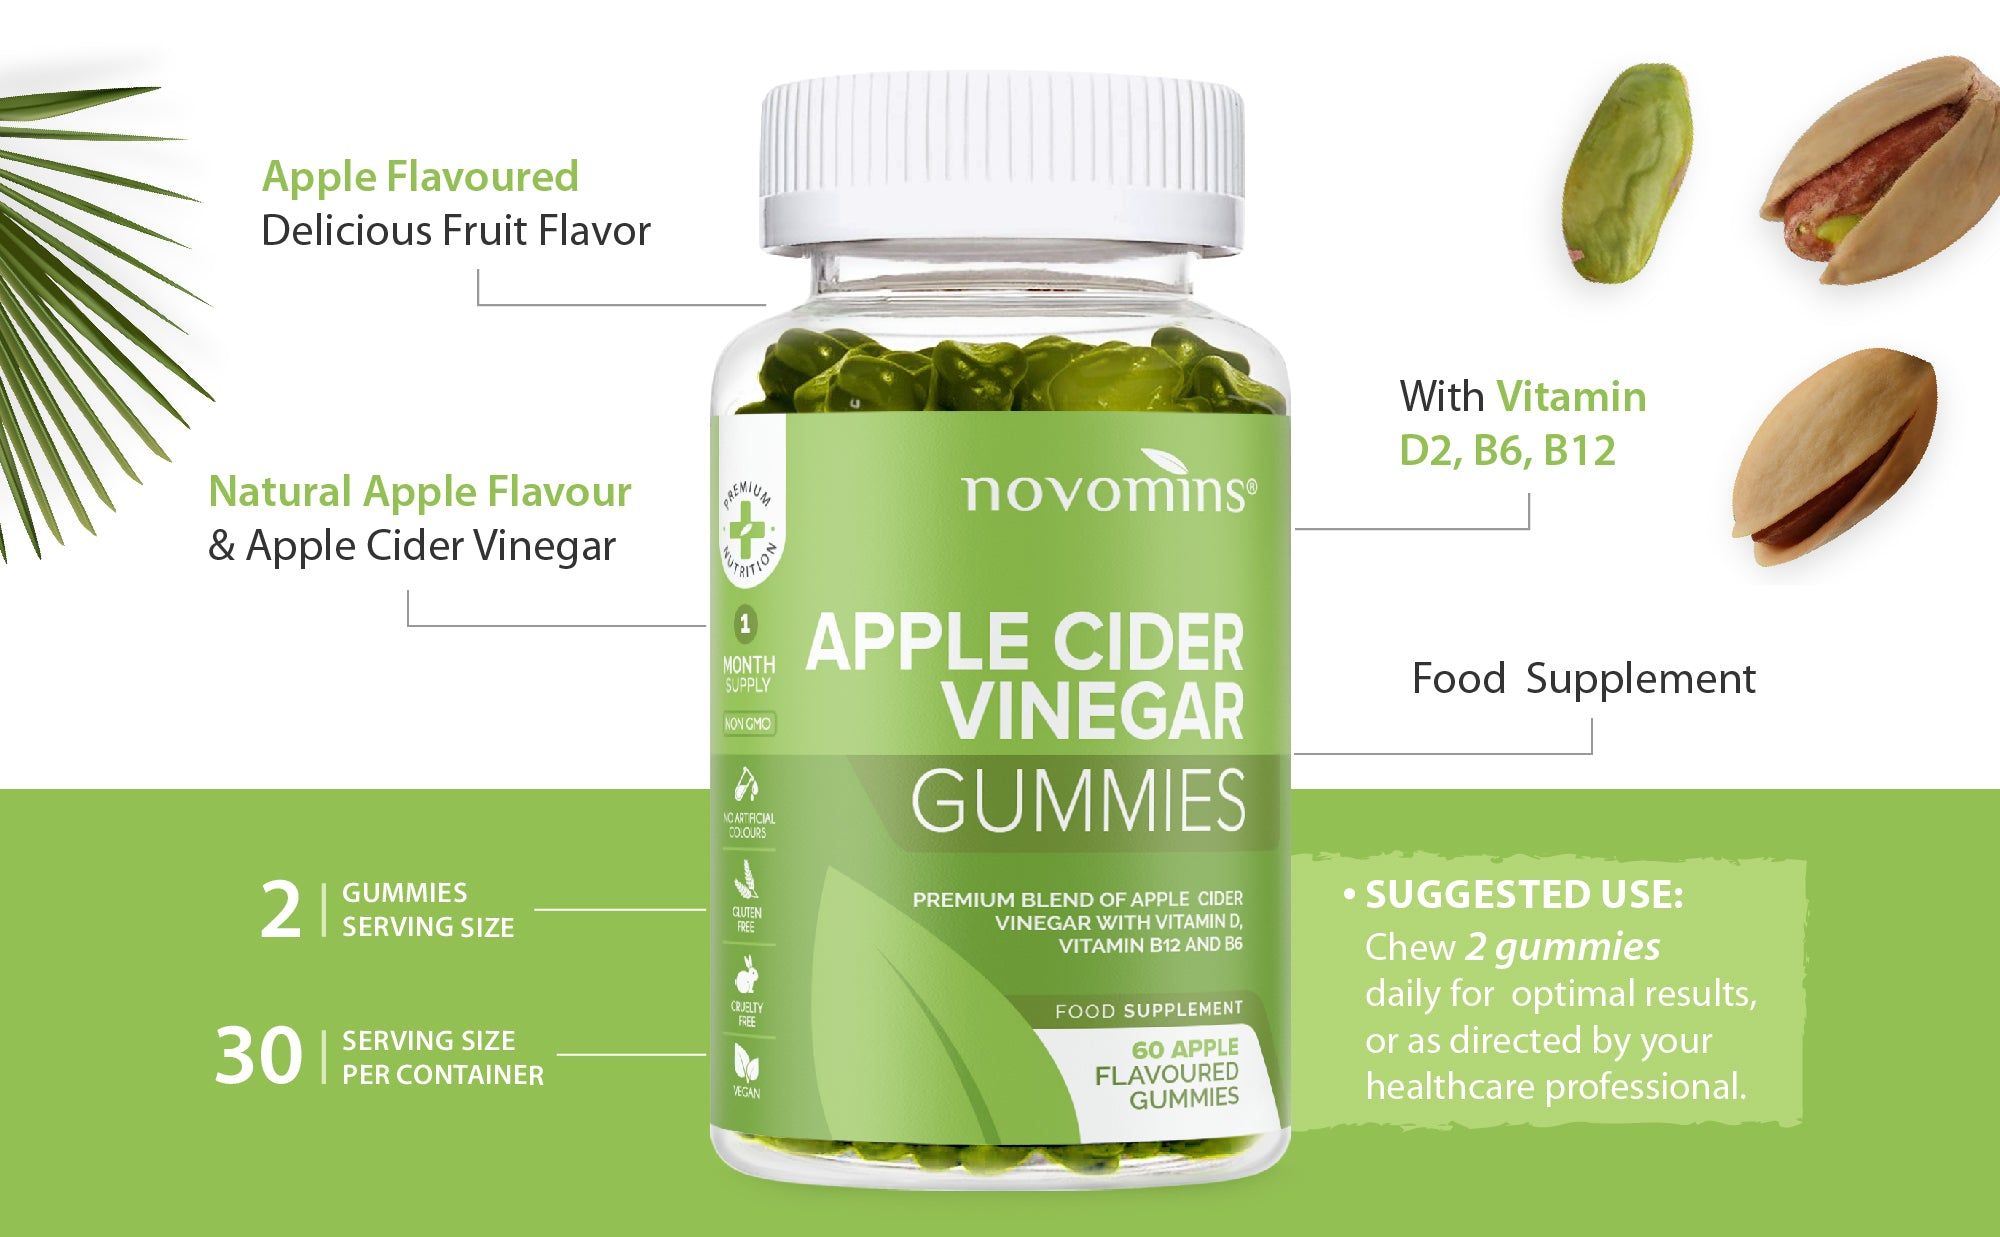 apple cider vinegar gummies, weight loss gummies, acv gummies, gluten free, cider vinegar, vitamin d, vitamin b12, apple cider gummies